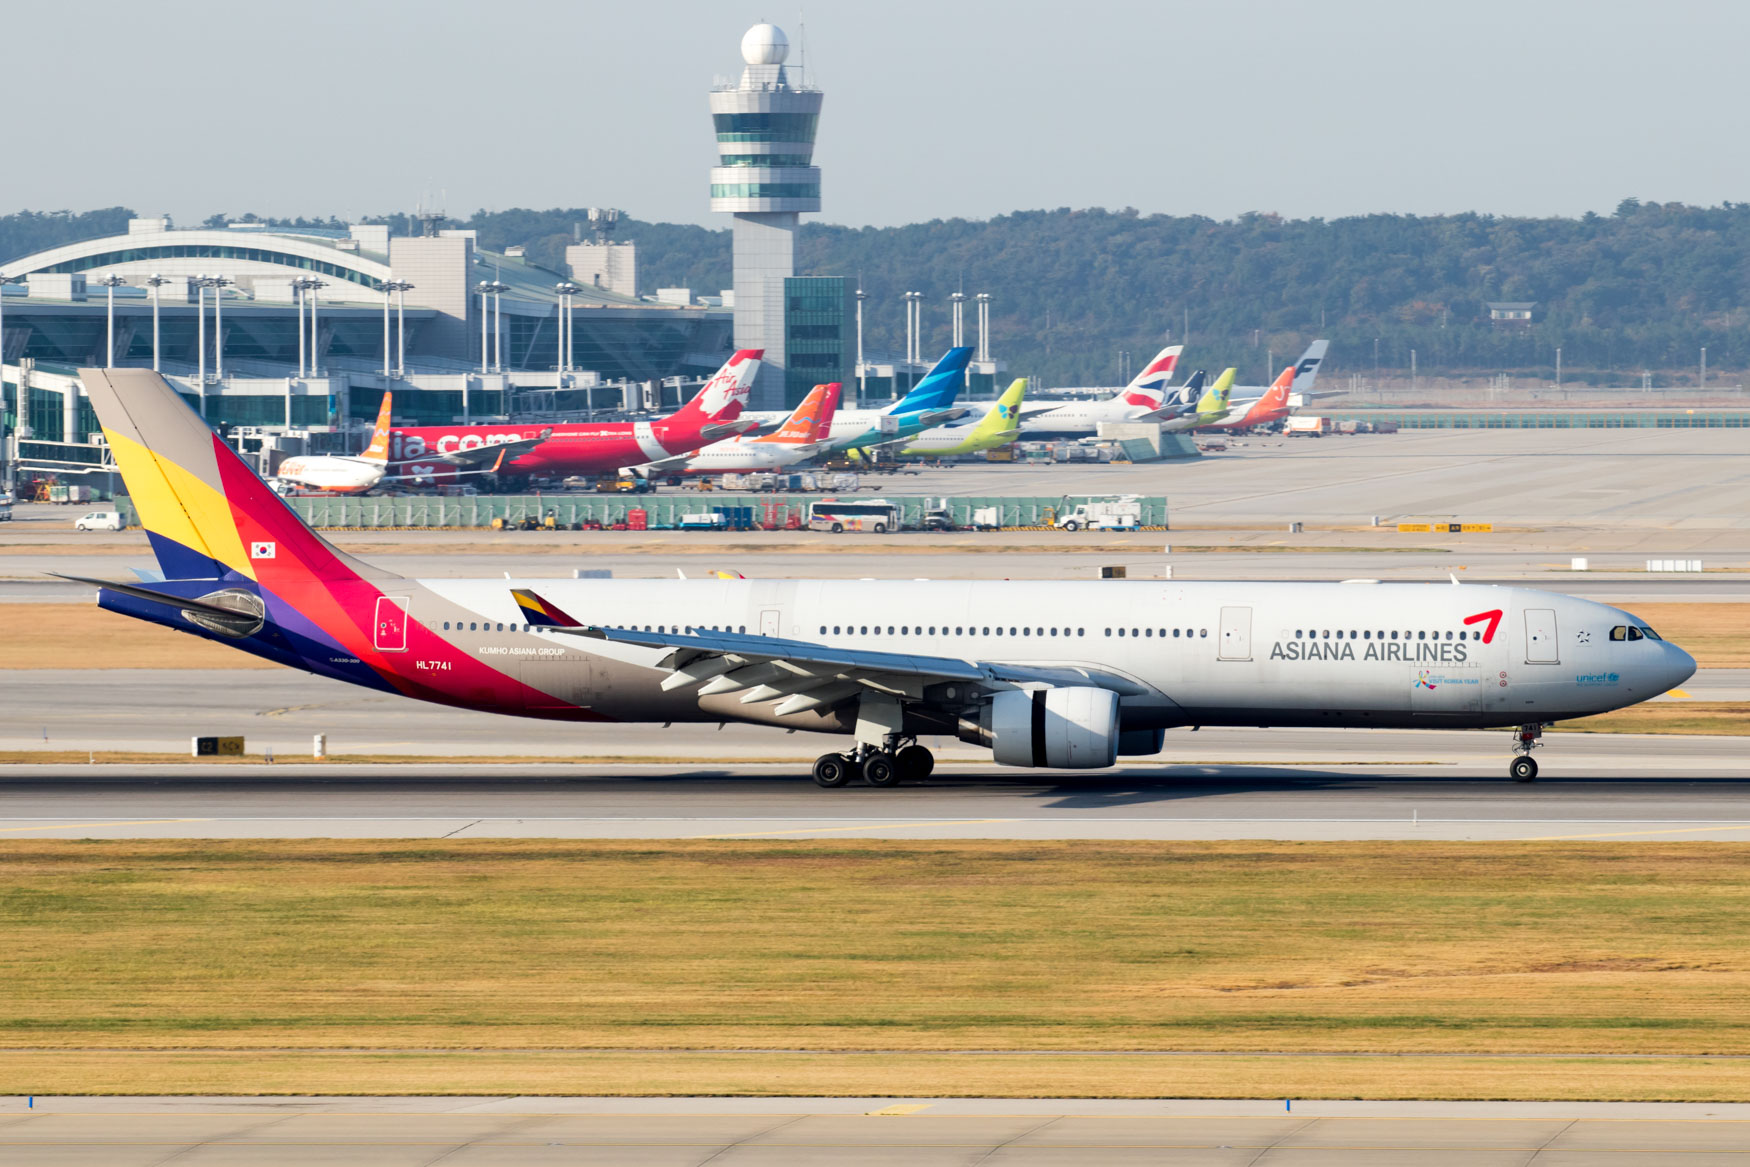 Asiana Airlines A330-300